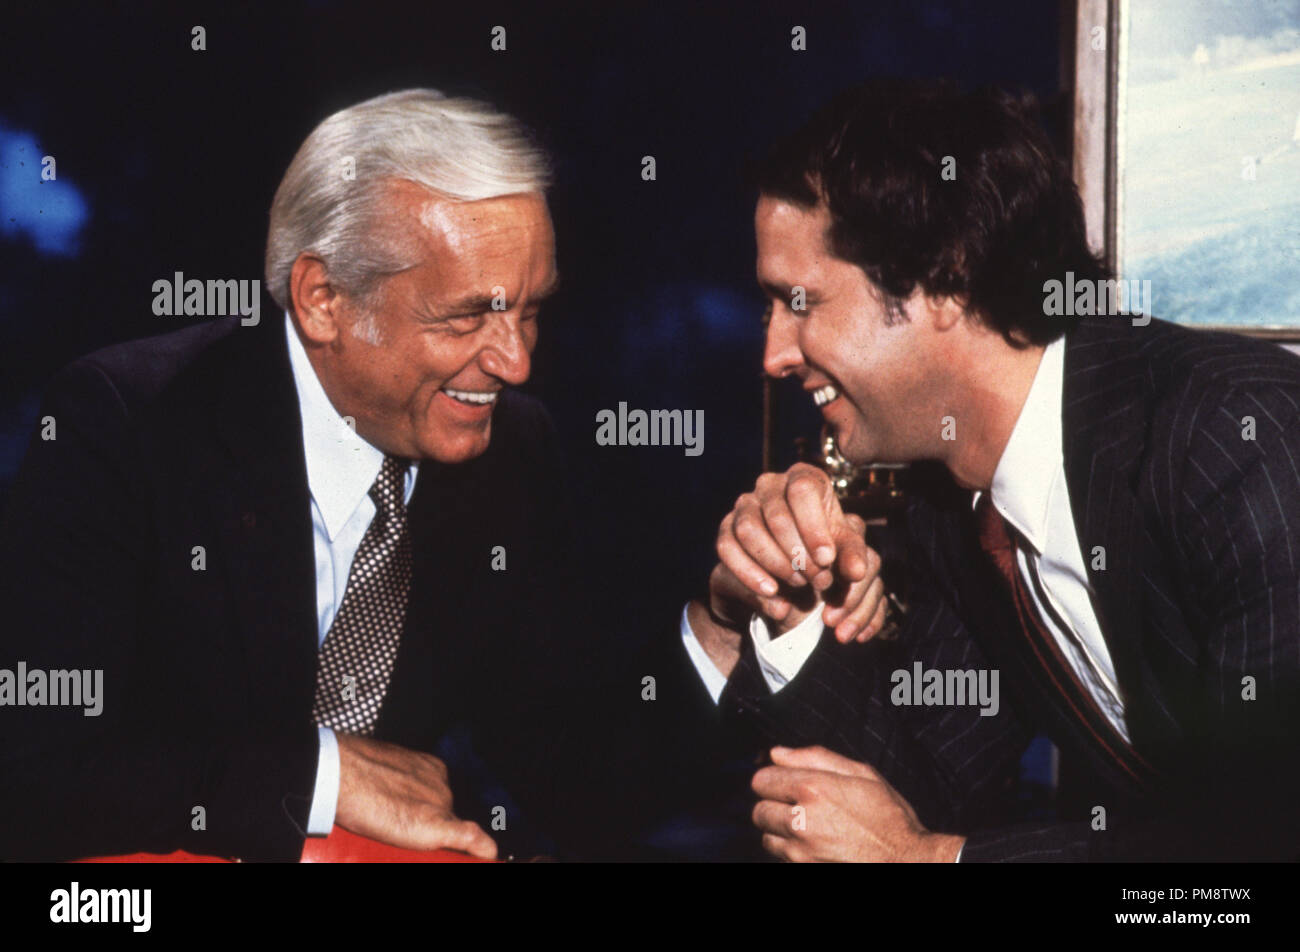 Studio Publicity Still from 'Caddyshack' Ted Knight, Chevy Chase © 1980 Orion  All Rights Reserved   File Reference # 31715288THA  For Editorial Use Only - Stock Image